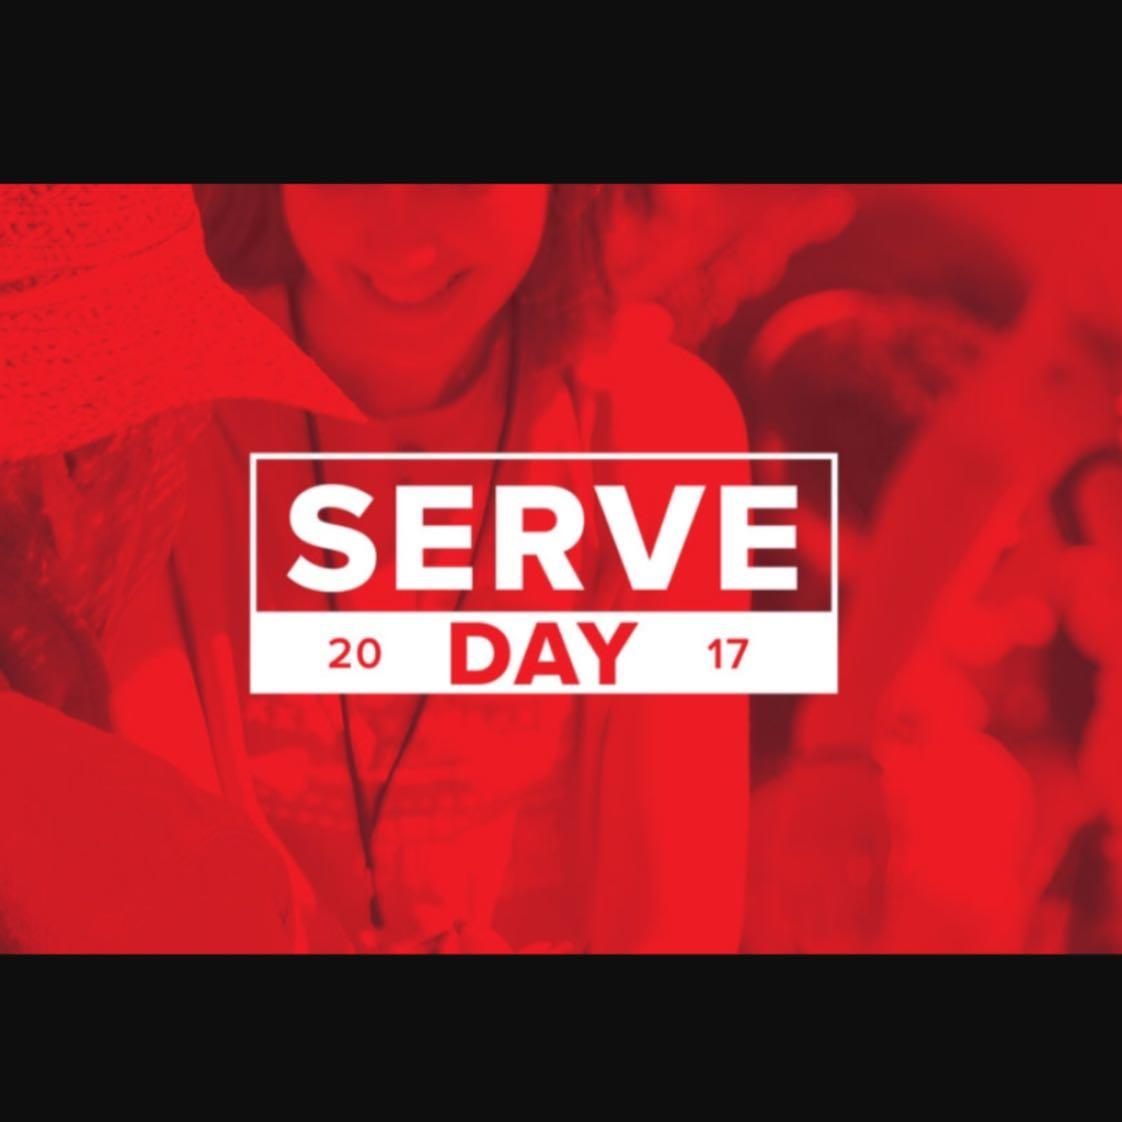 Tomorrow, Saturday July 15th, 2017 is Serve Day 2017. Please come out and join your local communities to be a part of such an amazing movement. For more info visit serveday.today.com or churchofthehighlands.com and click the serve tab. Thankful to be a part. Thankful for the opportunity to give back. #serveday17 #madetoserve #godisgood #togetherwearebetter #togetherwecanmakeadifference